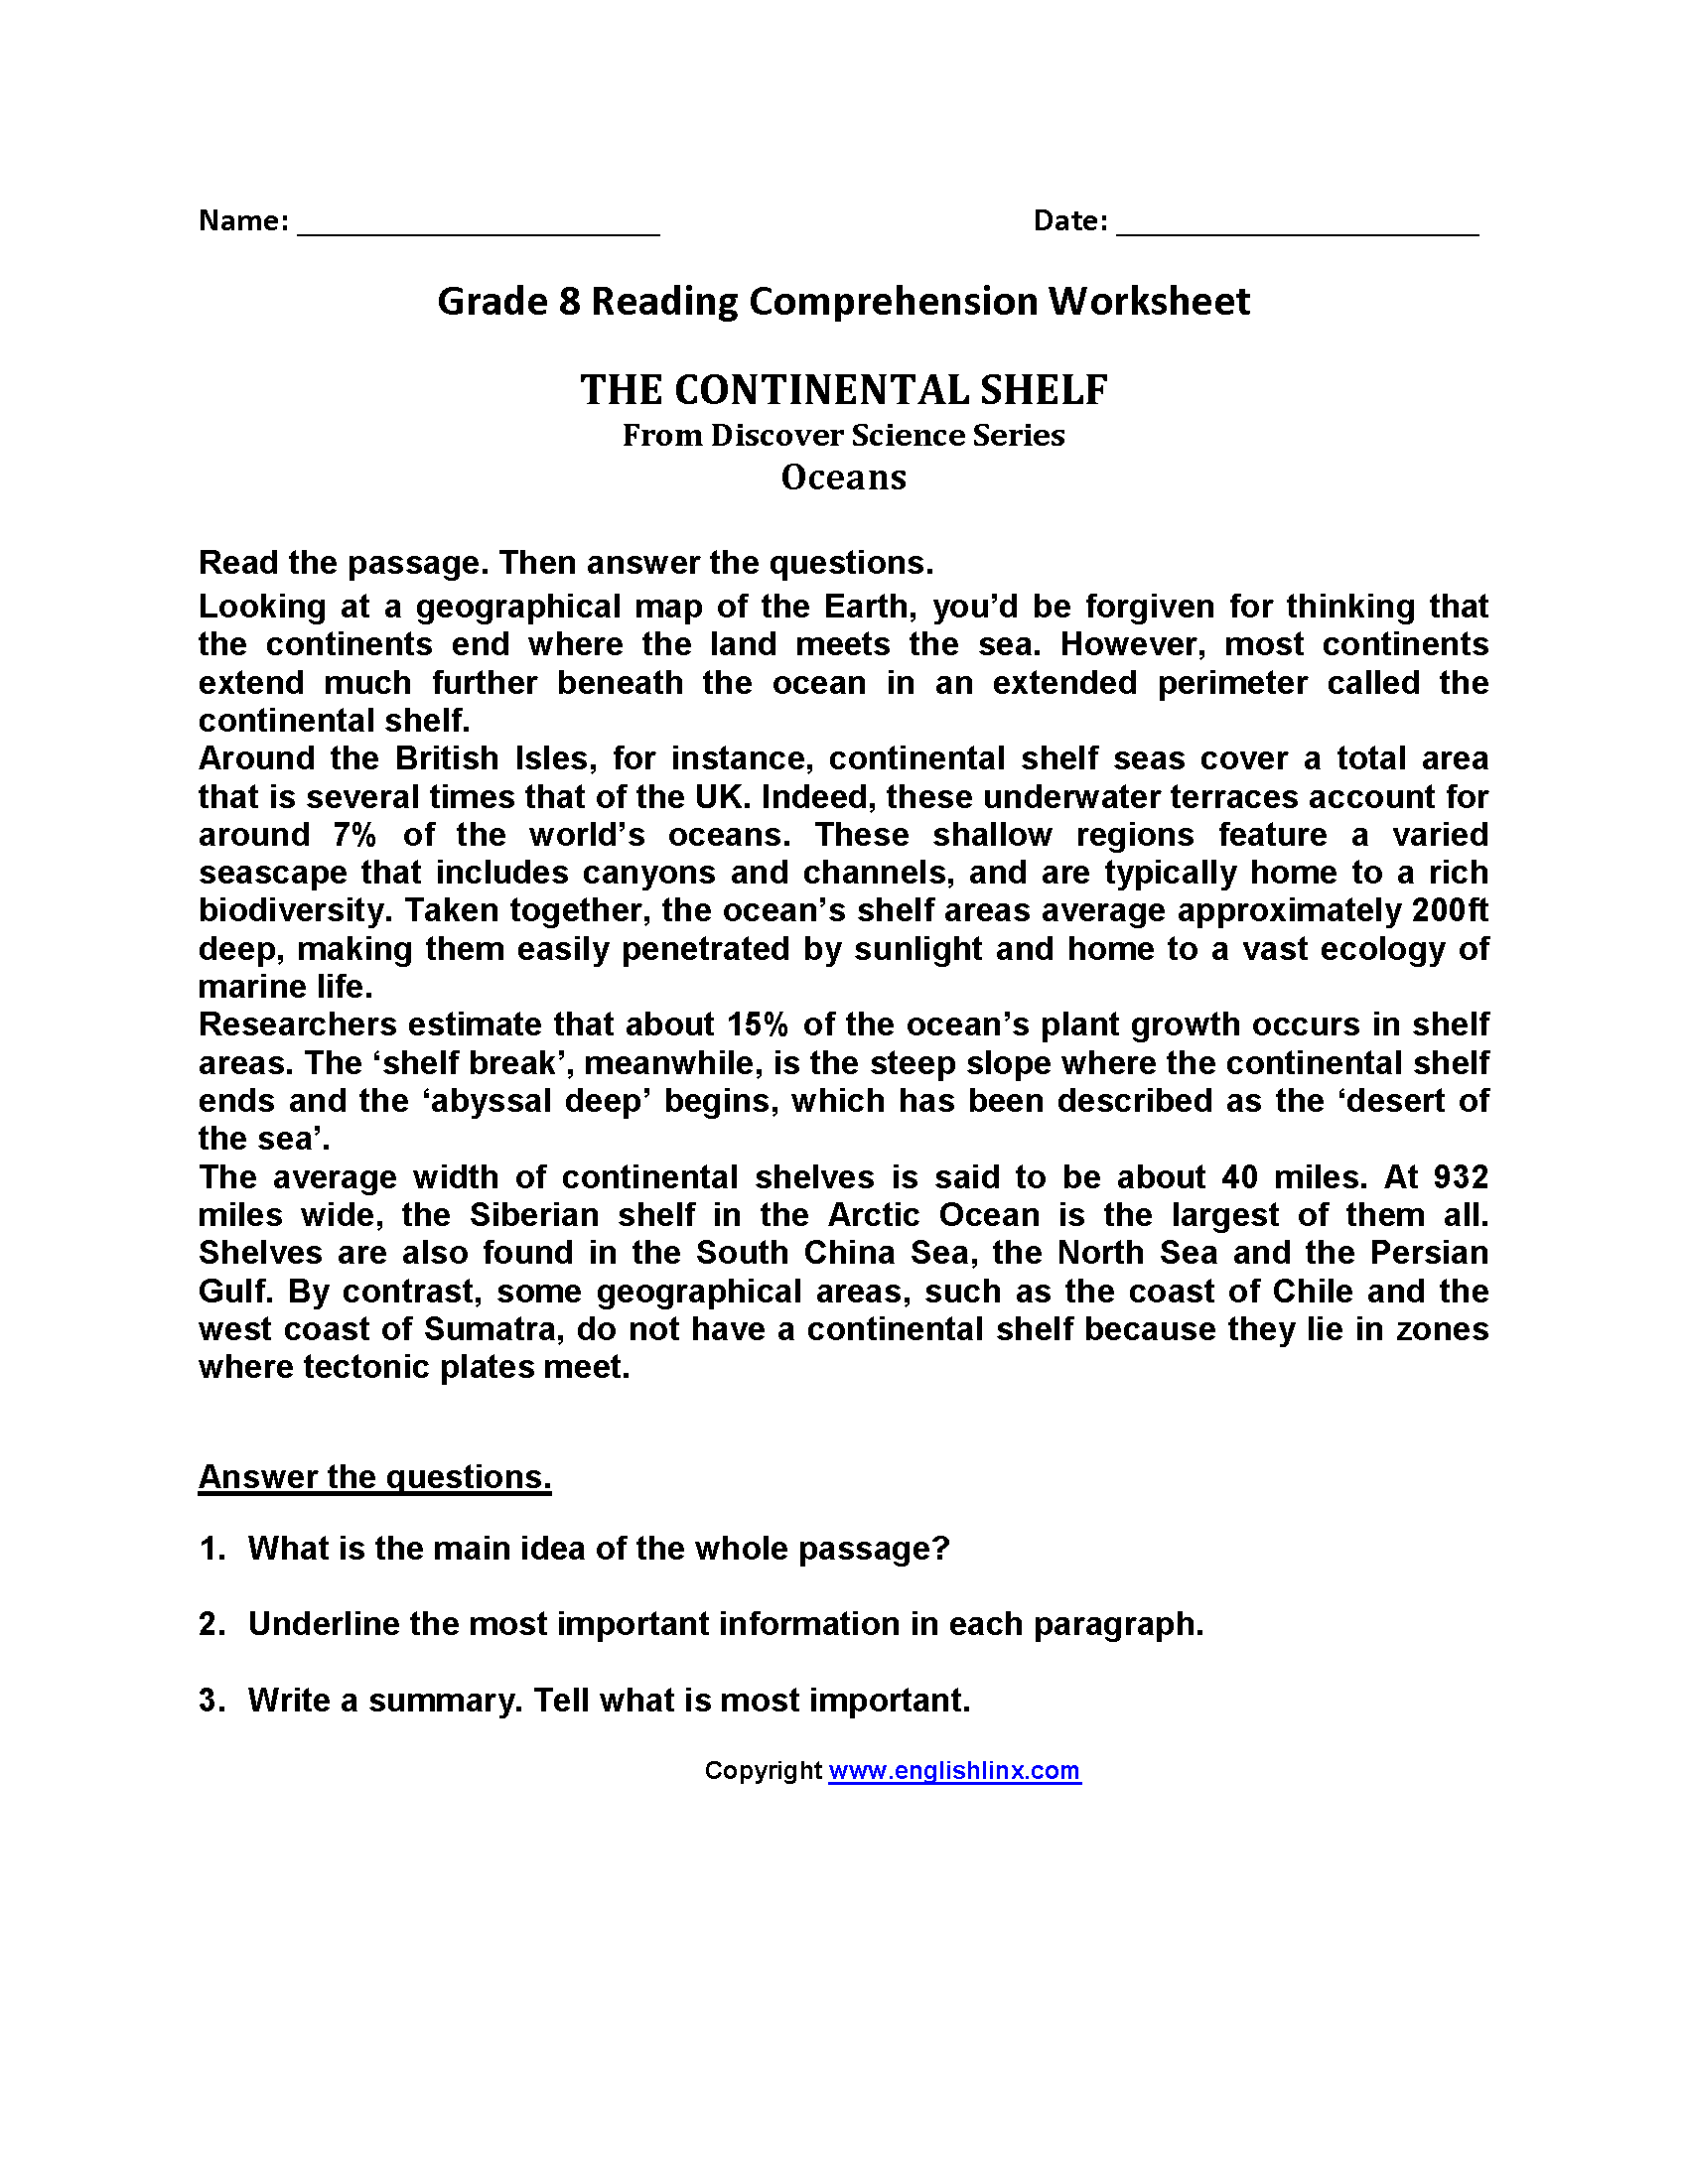 Free Printable Second Grade Reading Comprehension Worksheets and Reading Worksheets Eighth Grade Reading Worksheets